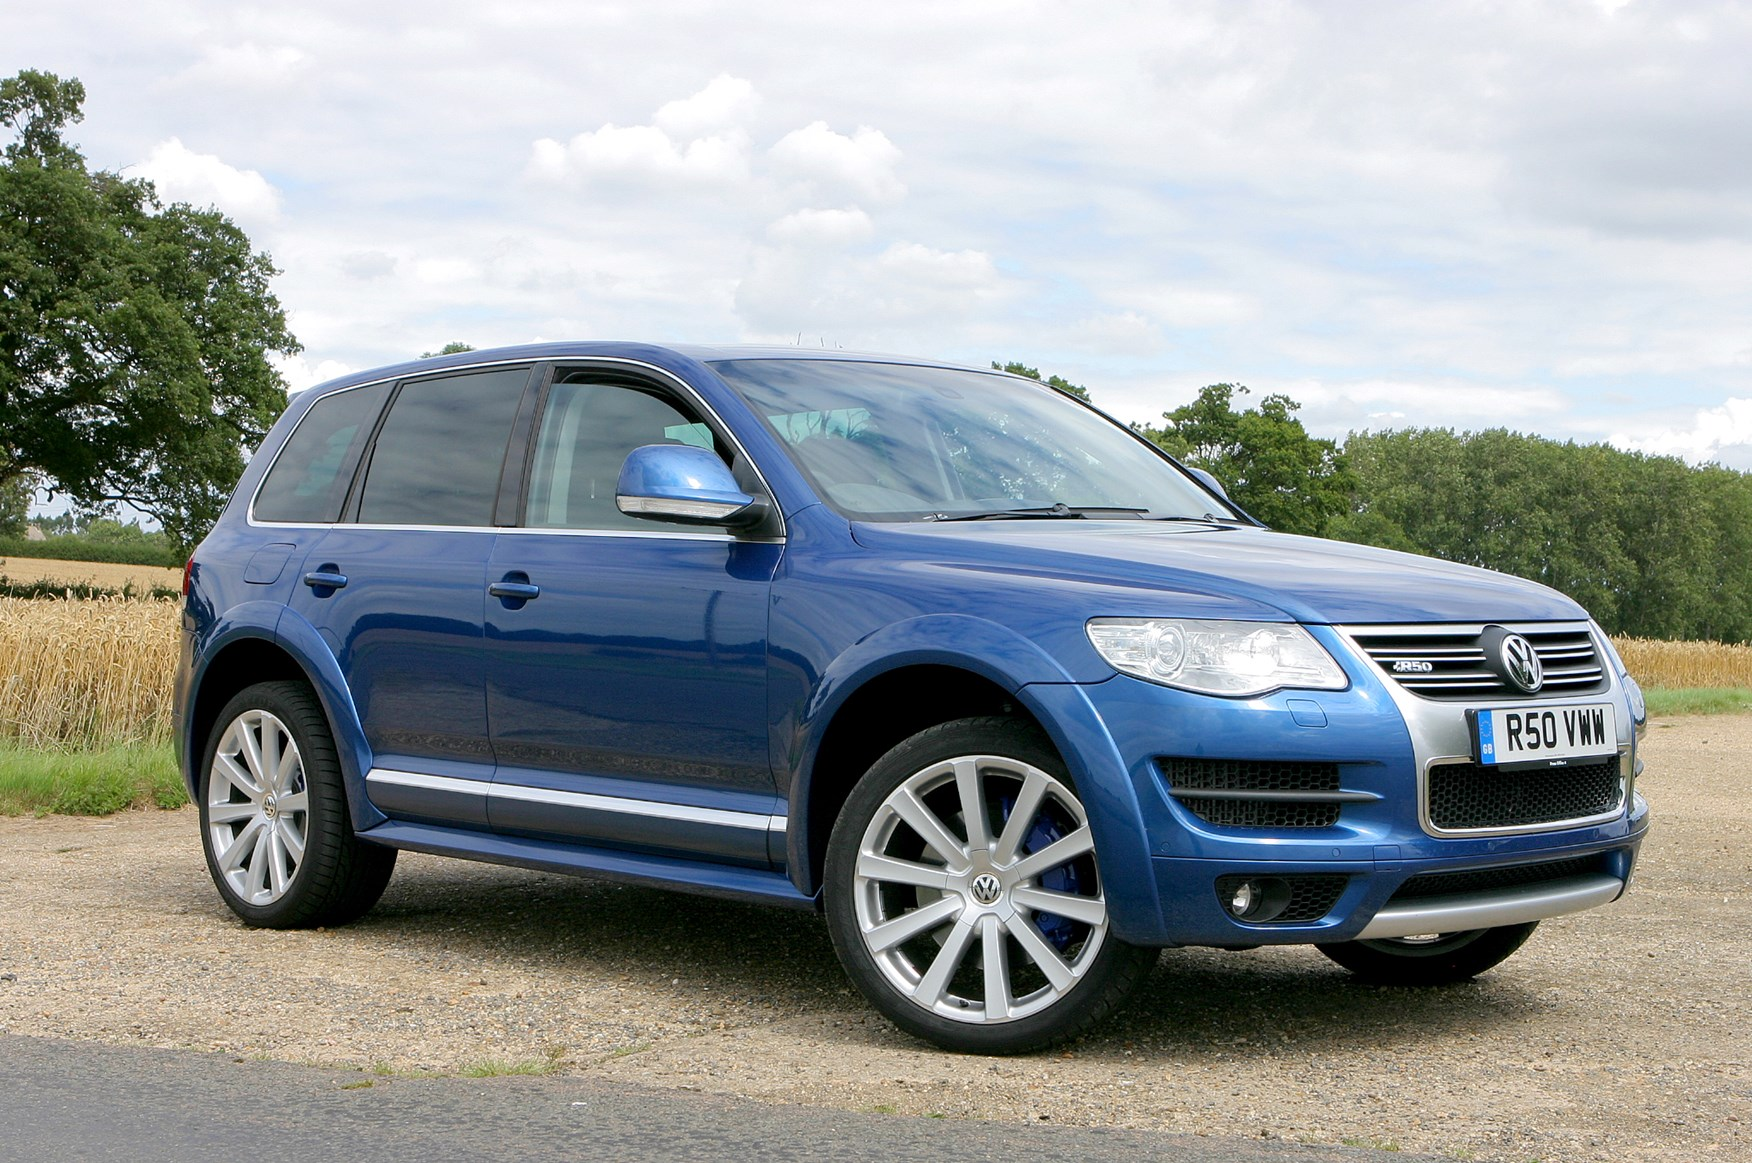 volkswagen touareg r50 2008 2009 photos parkers. Black Bedroom Furniture Sets. Home Design Ideas